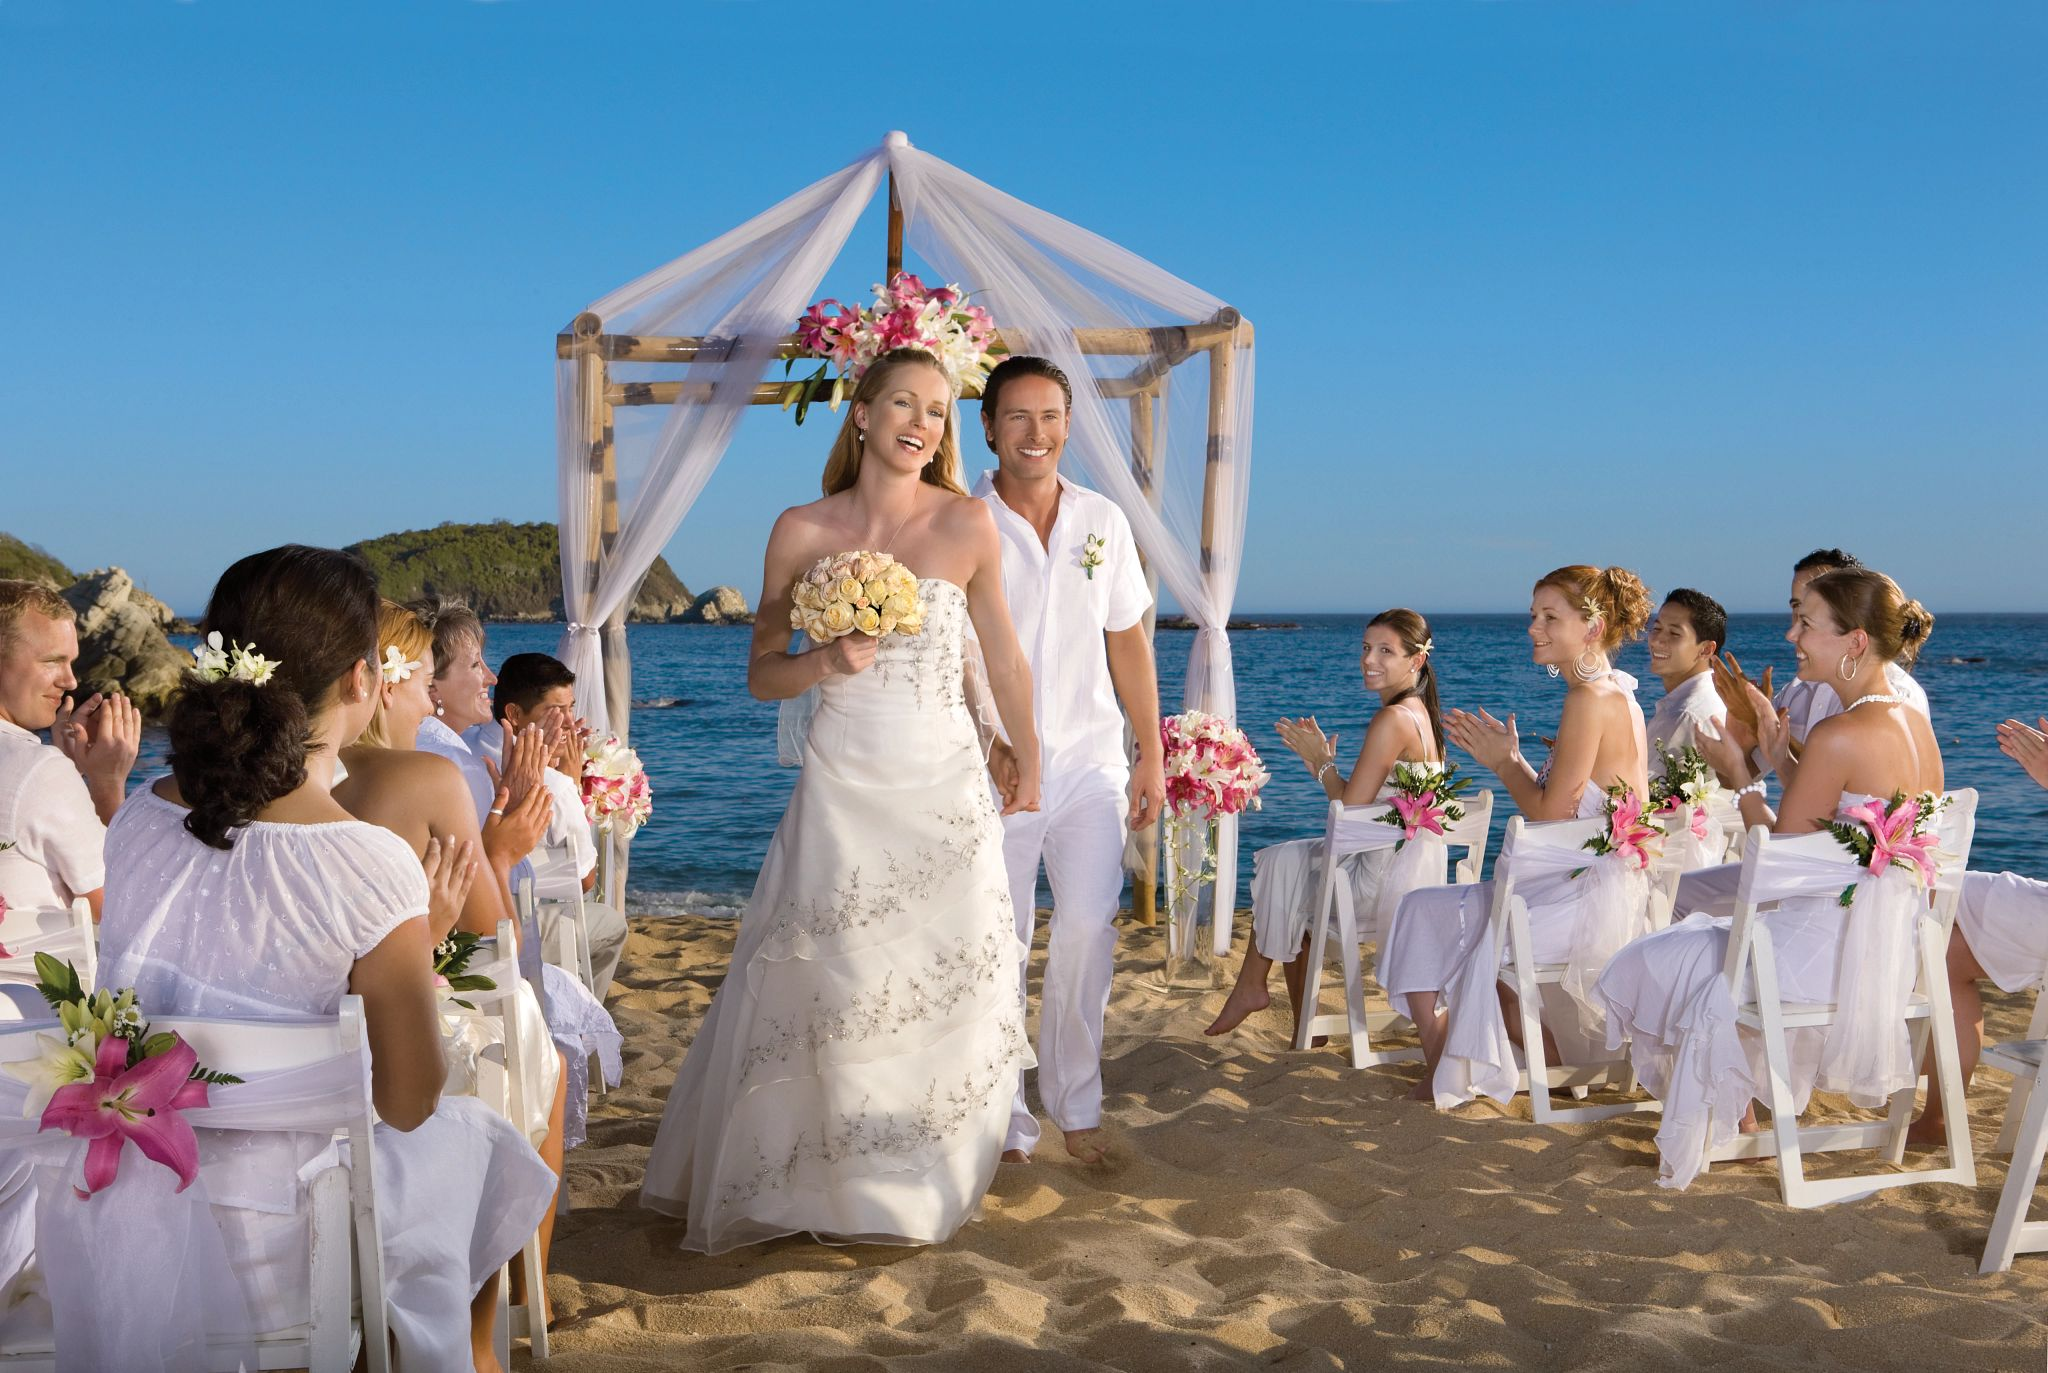 Newlywed Couple walking together past seated guests applauding them at the conclusion of the wedding ceremony on the beach